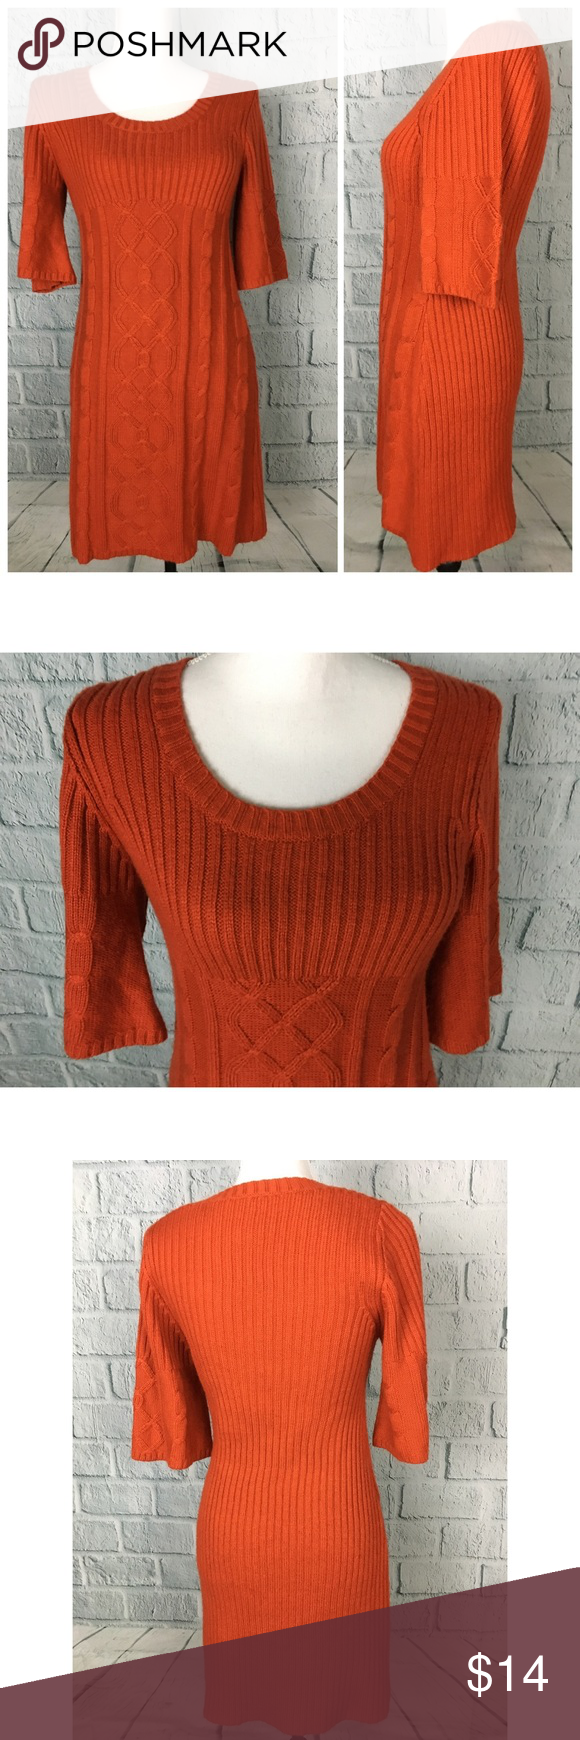 Pink Rose Orange Chunk Knit Sweater Dress Pullover style chunky ...